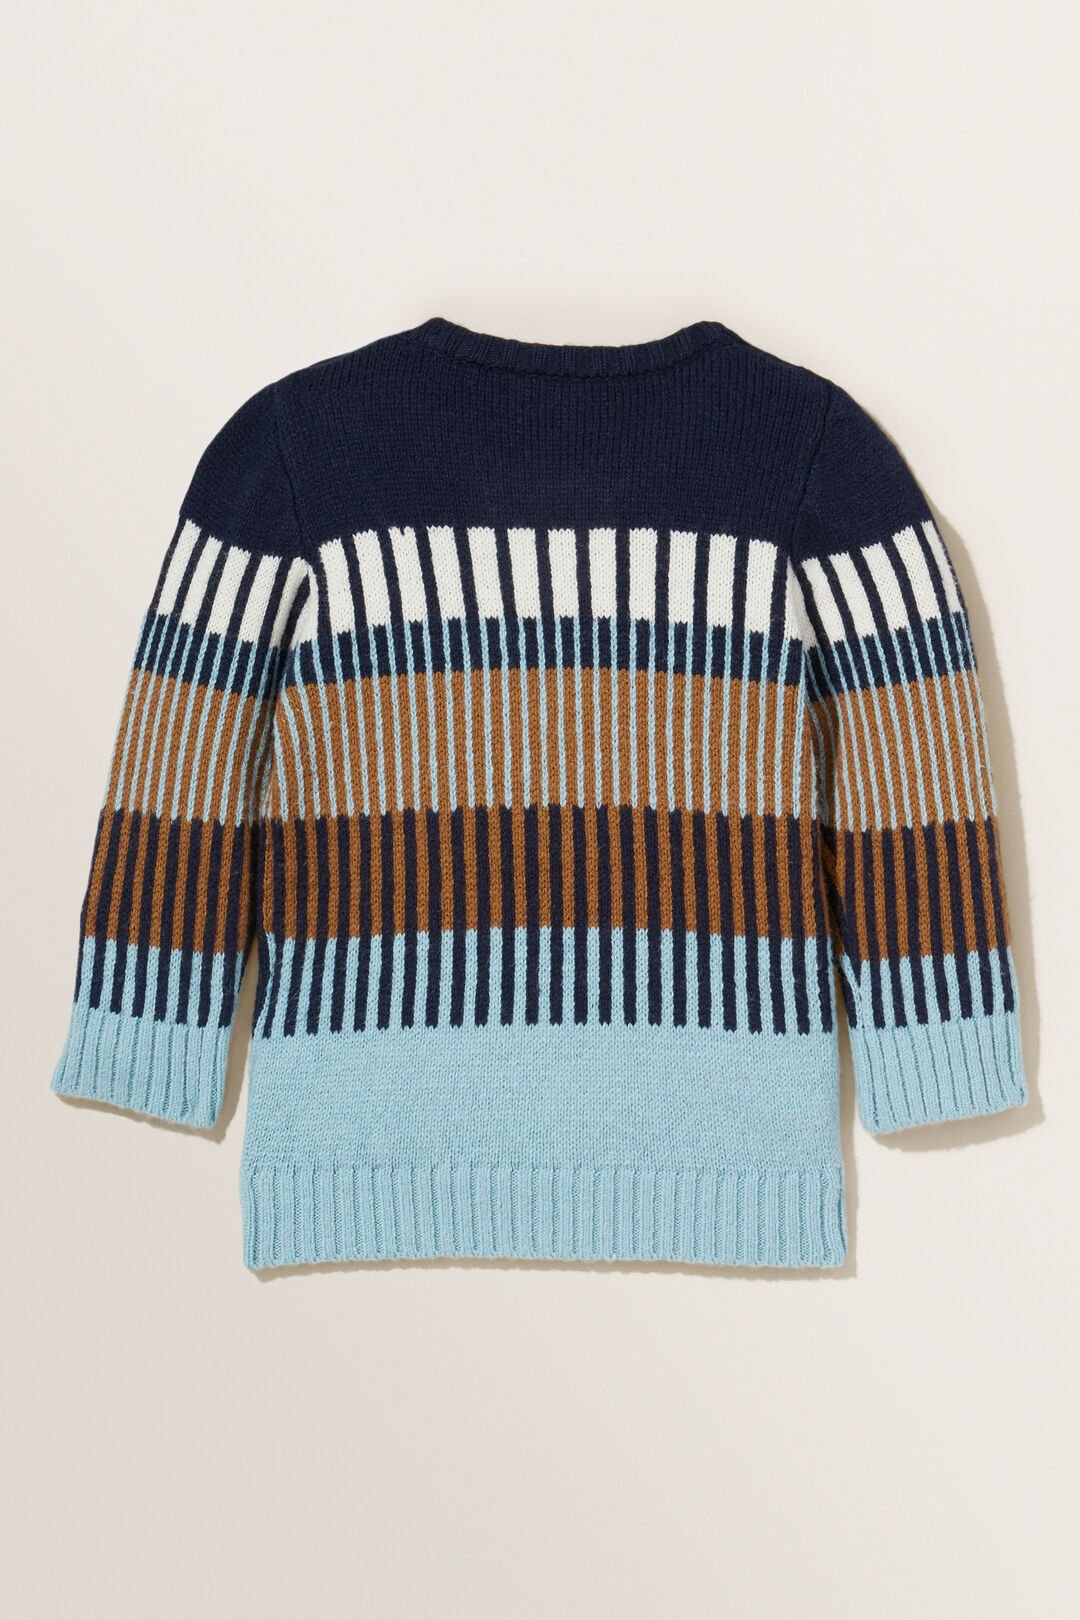 Jacquard Knitted Sweater   MIDNIGHT BLUE  hi-res